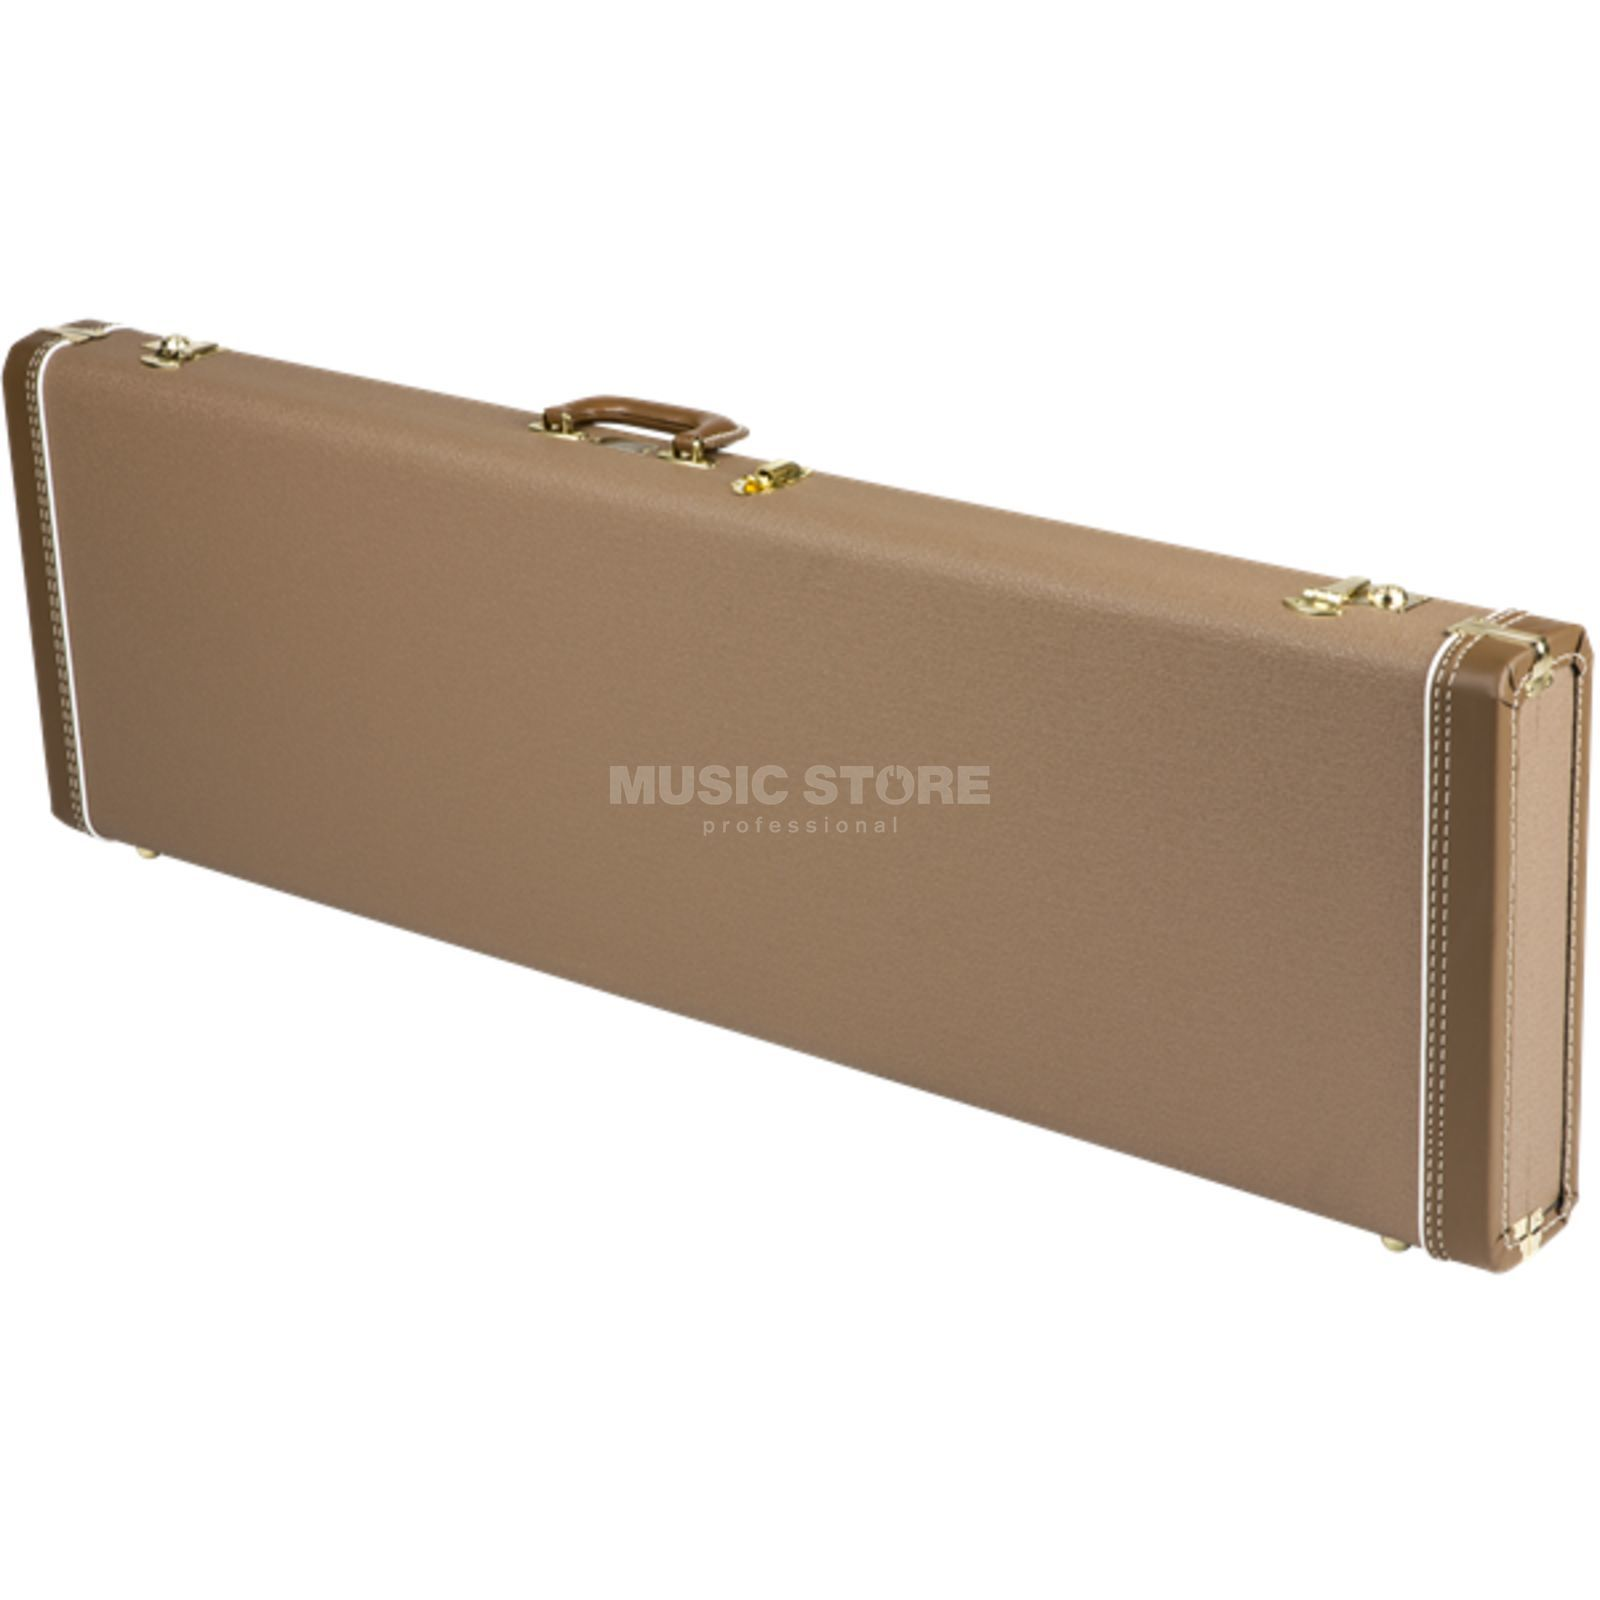 Fender Case MultiFit Hardshell P-Bass Brown with Gold Plush Zdjęcie produktu